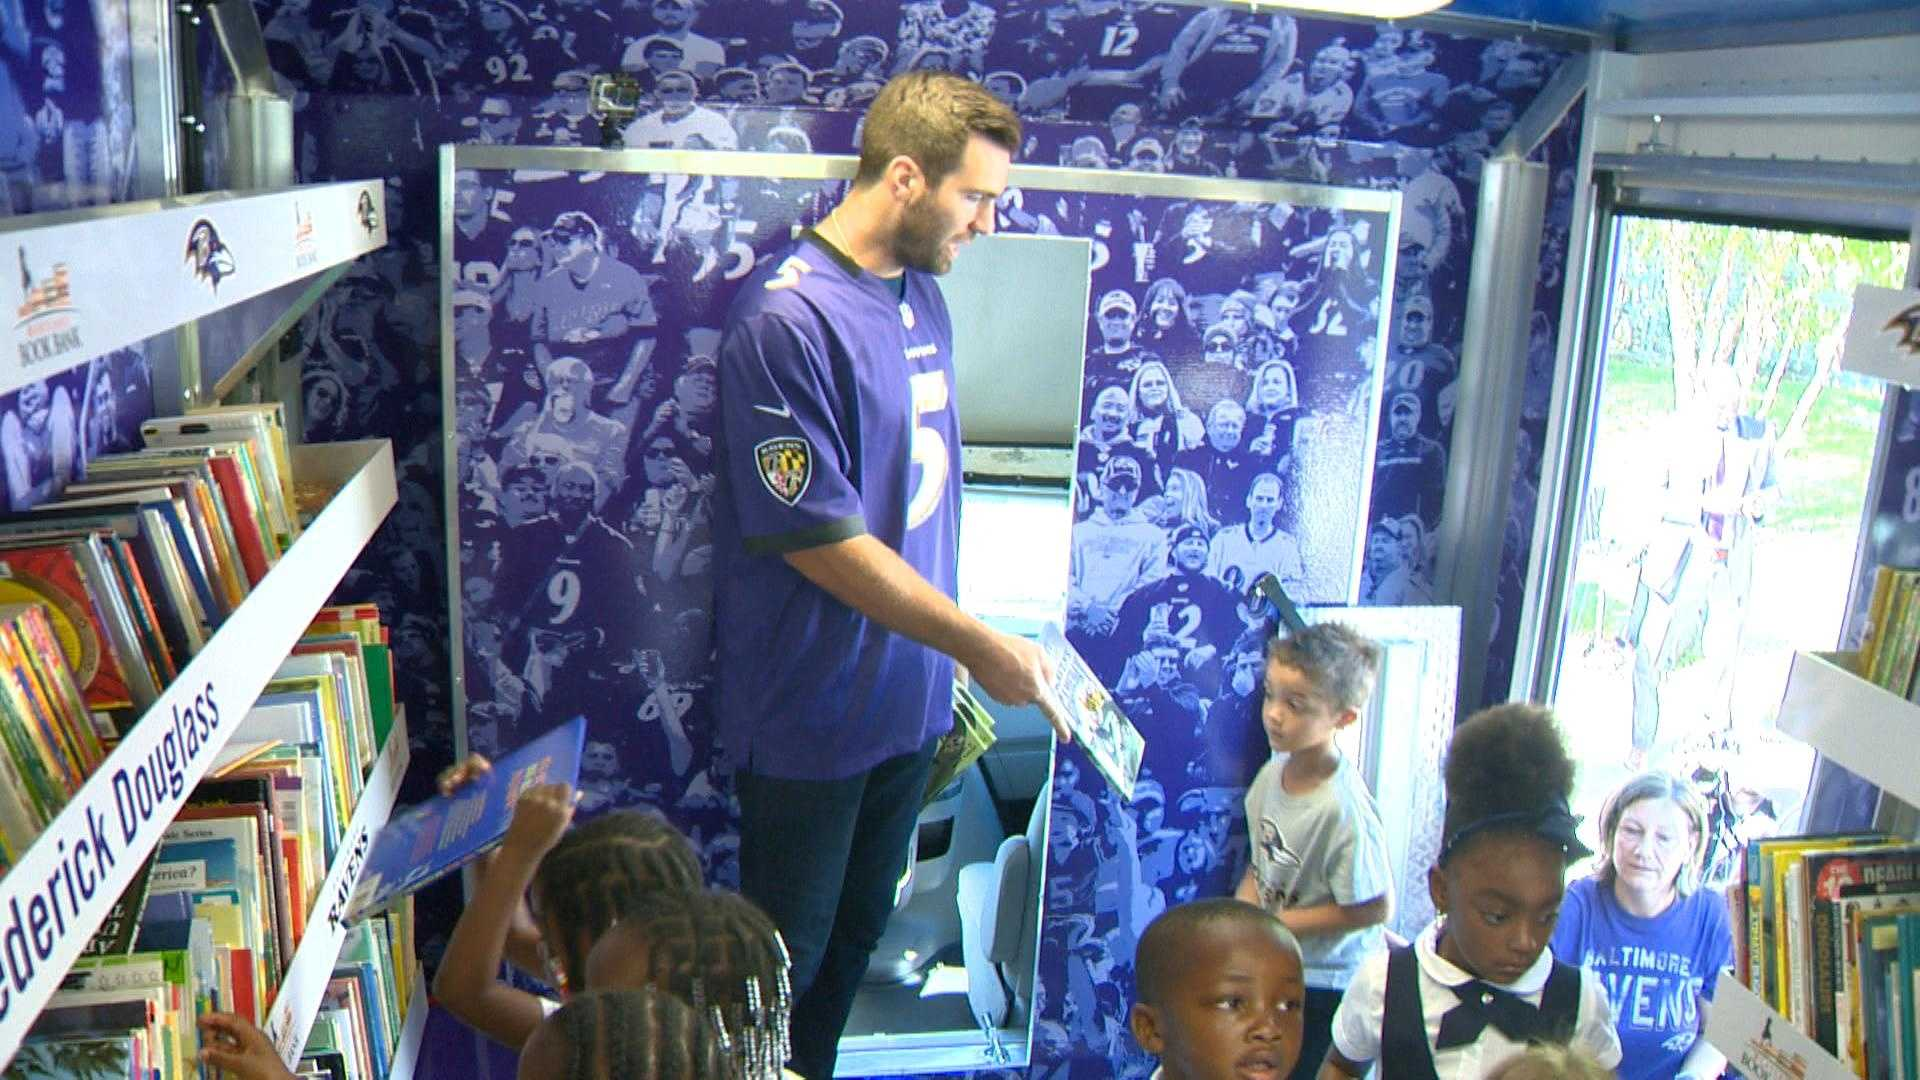 Ravens quarterback Joe Flacco hands out books to children at Abbottston Elementary School as the team unveils its bookmobile.